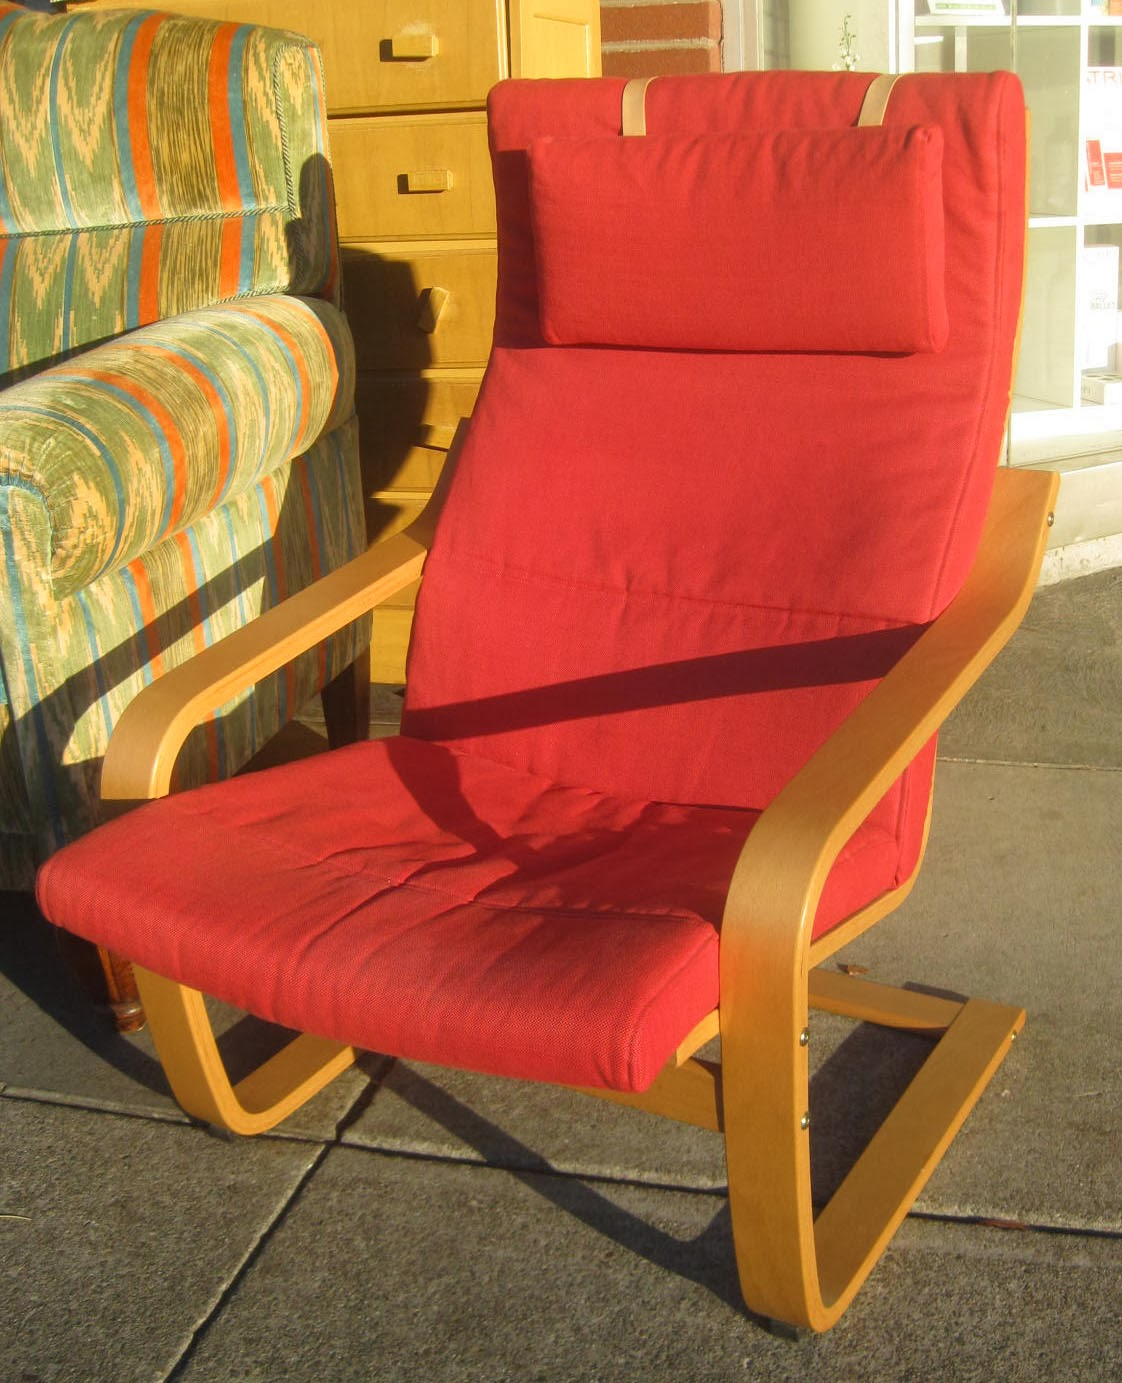 Uhuru furniture collectibles sold red bentwood ikea chair 35 - Bentwood chairs ikea ...